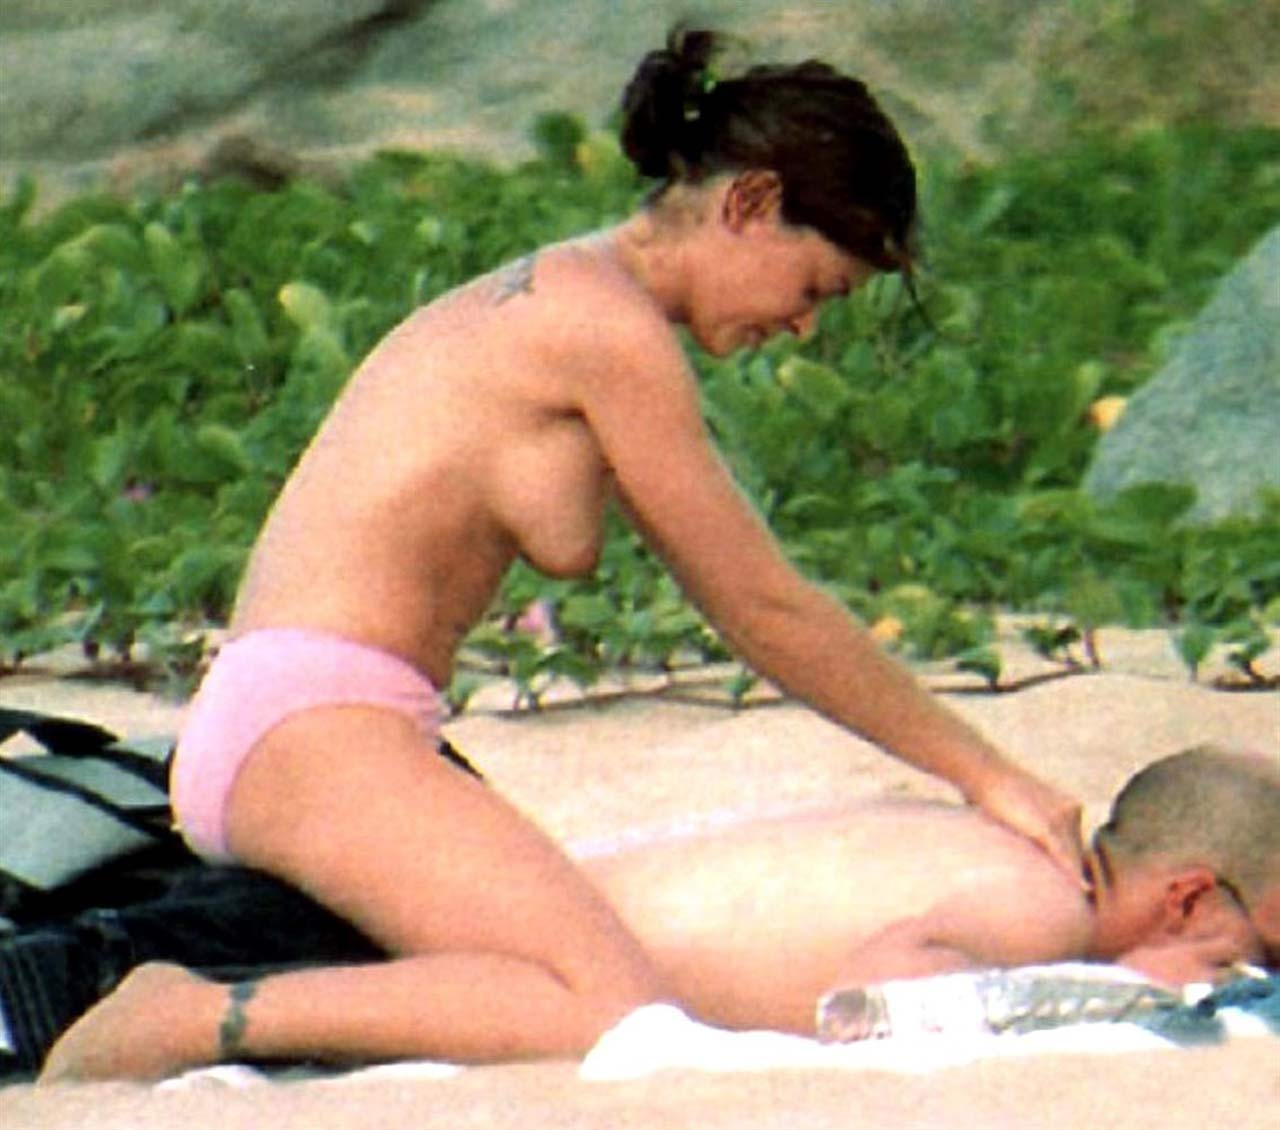 Alyssa Milano Tits alyssa milano nude pussy and tits on the beach - scandal planet